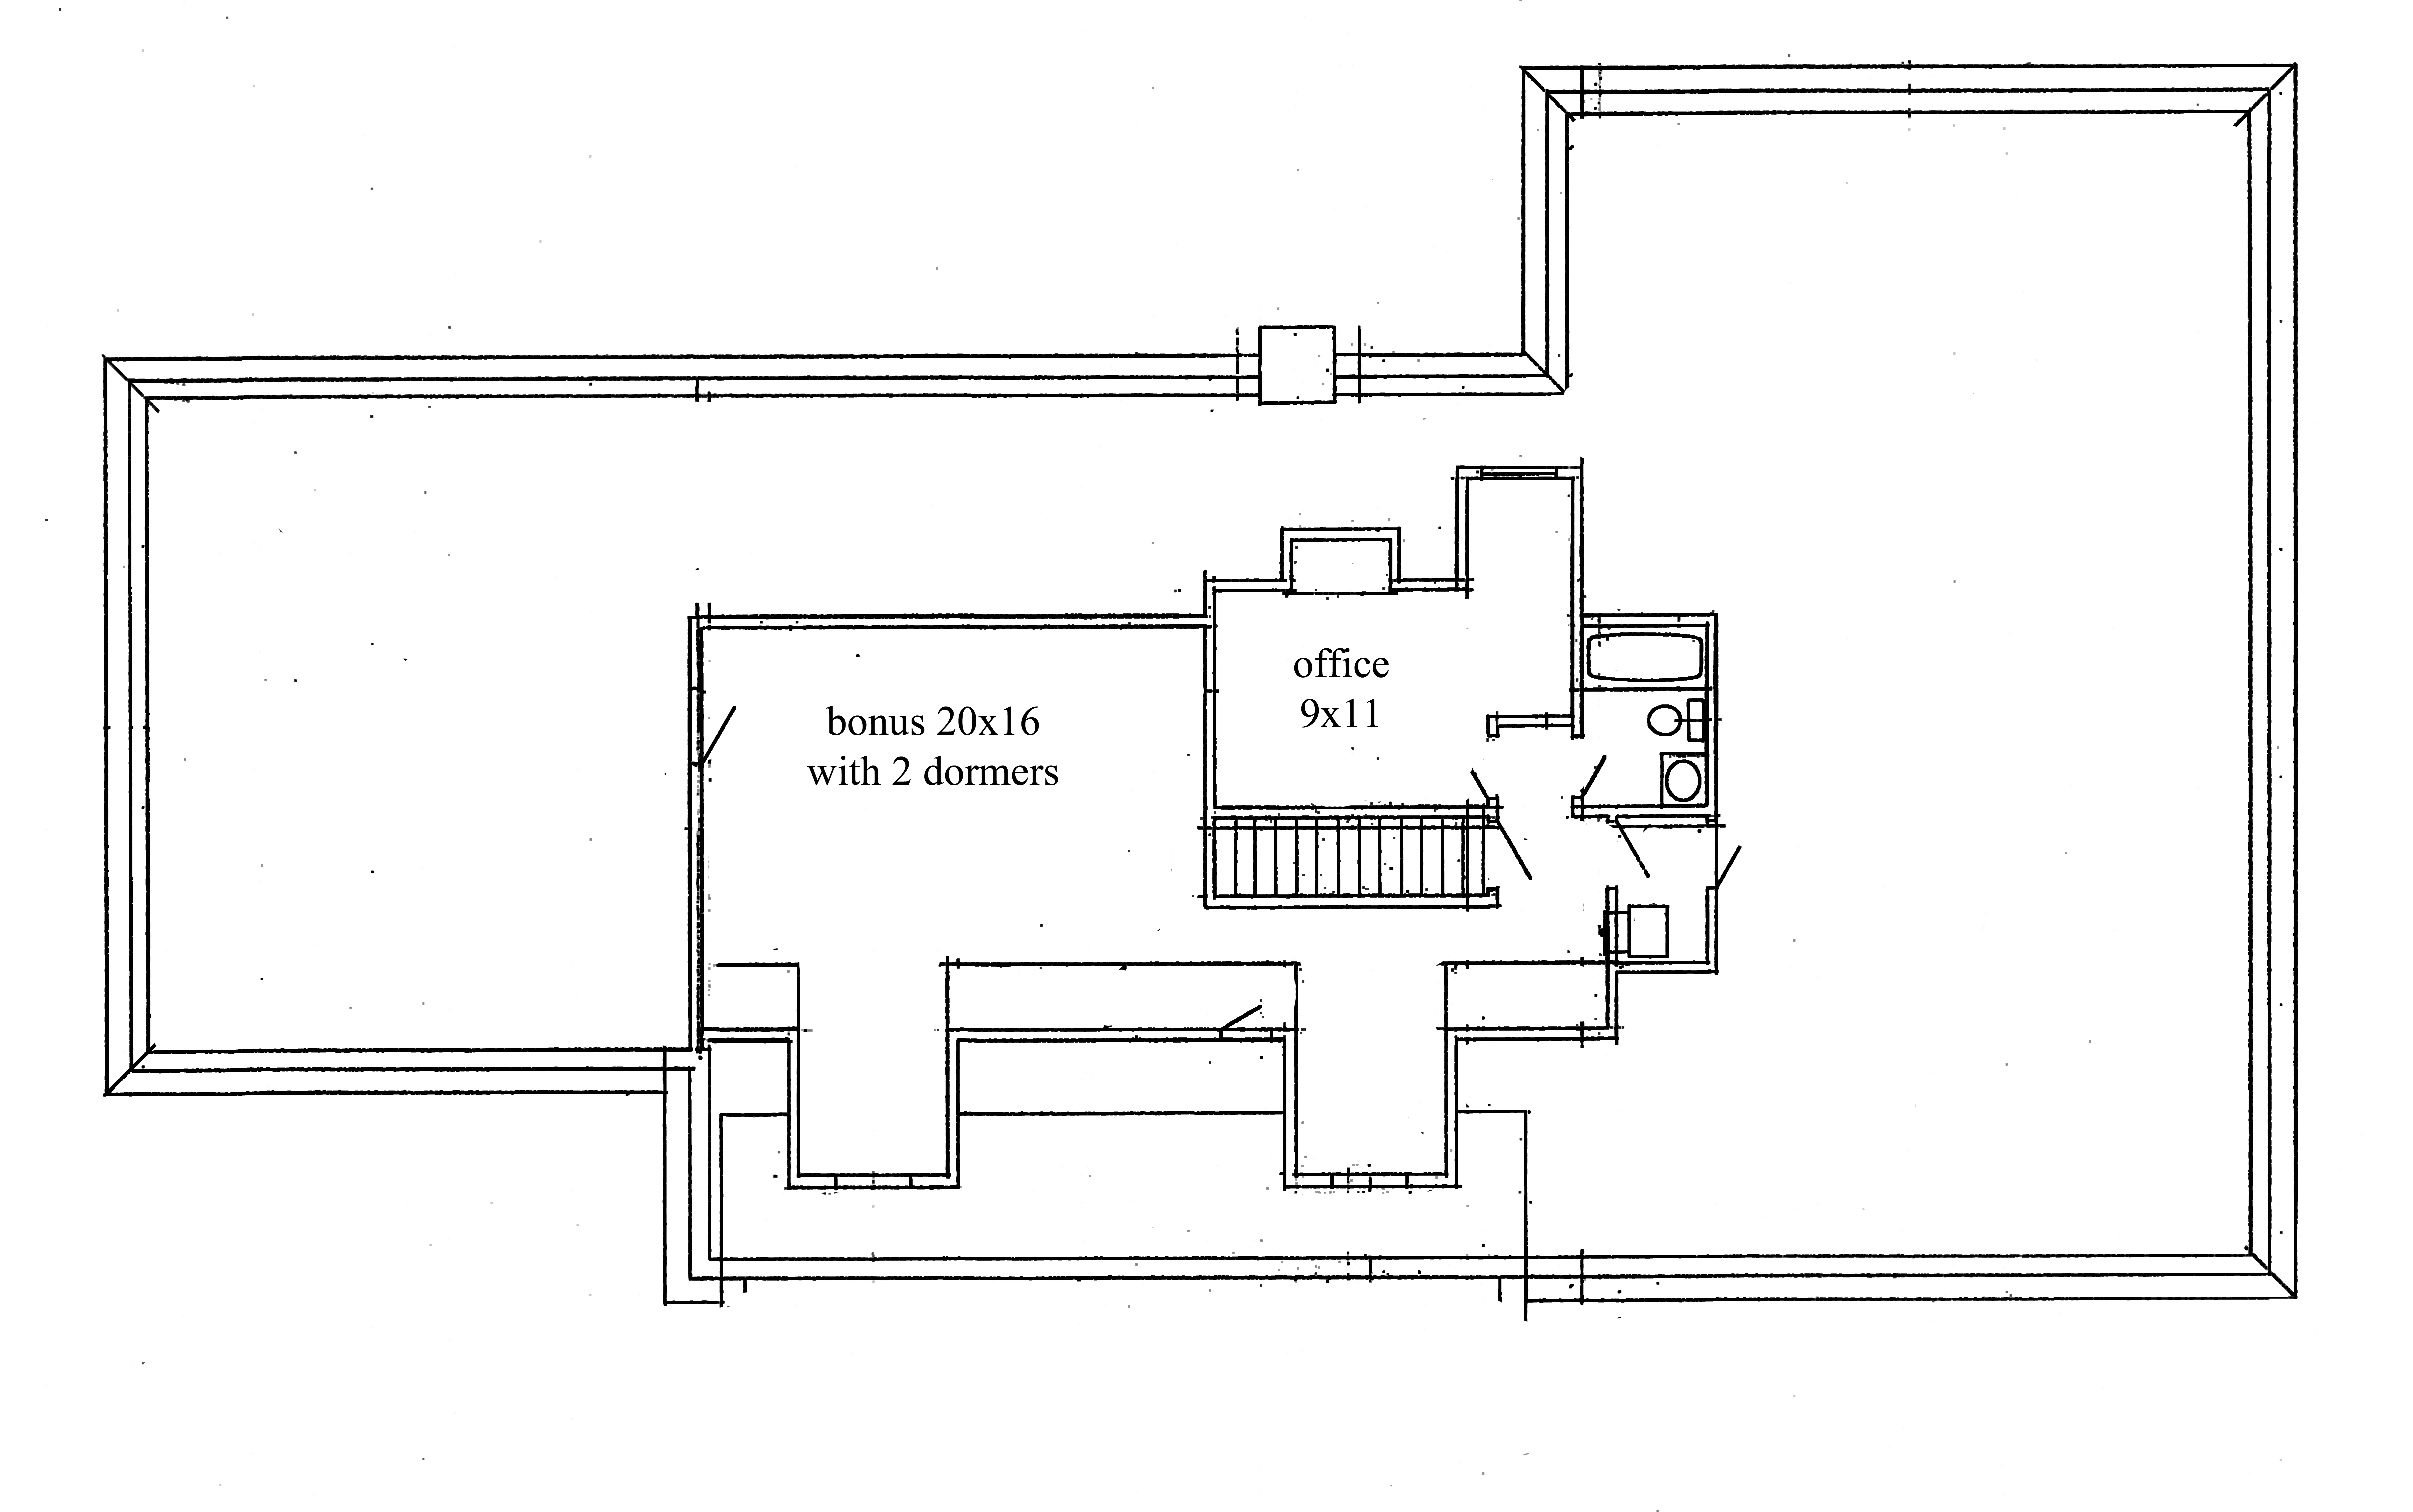 house plans, new construction, home, floor plan | Greenwood ... on walkout ranch house plans, ranch house kitchens, classic ranch house plans, luxury ranch home plans, ranch house plans with porches, ranch house plans awesome, ranch house with basement, one story house plans, luxury house plans, ranch country house plans, western ranch house plans, rustic ranch house plans, 4-bedroom ranch house plans, texas ranch house plans, 8 bedroom ranch house plans, unique ranch house plans, loft house plans, ranch house design, ranch house layout, ranch house with garage,